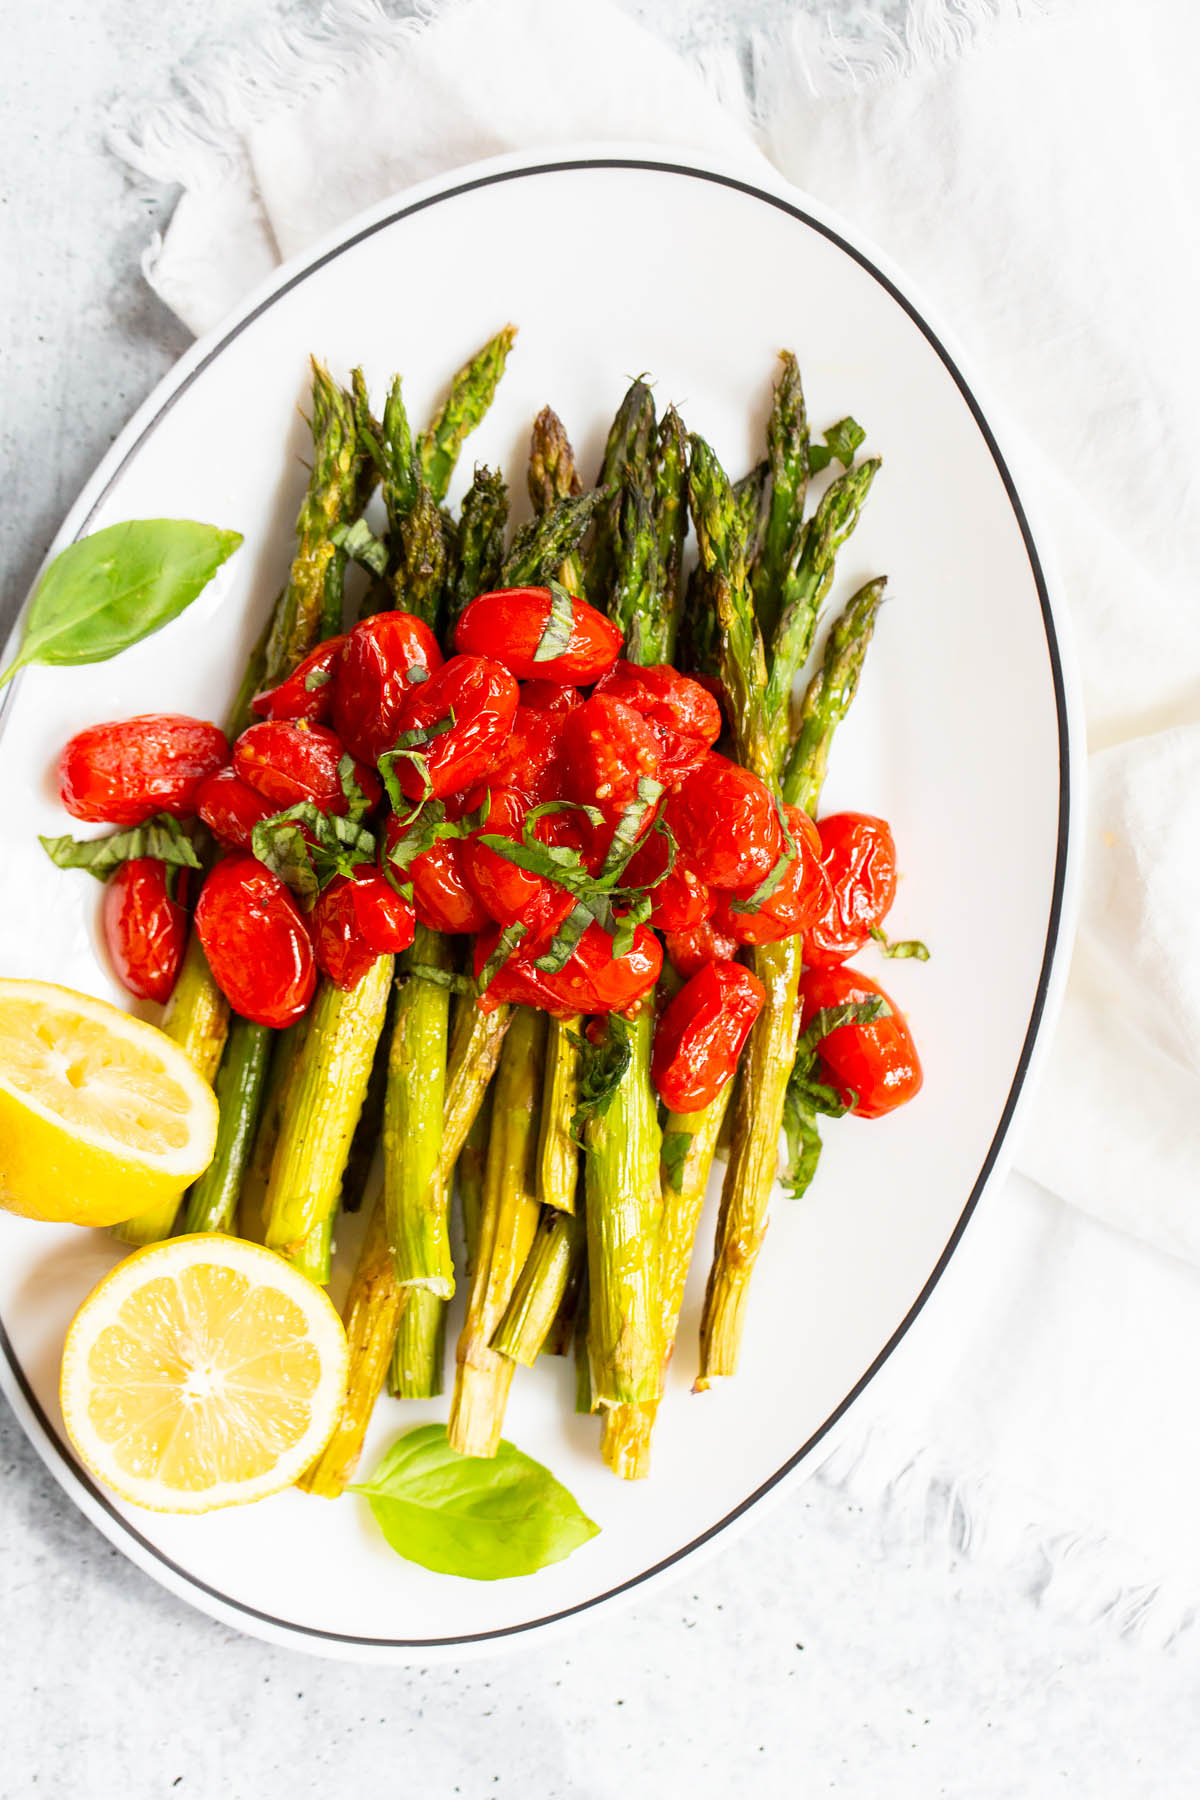 roasted asparagus with cherry tomatoes and lemon